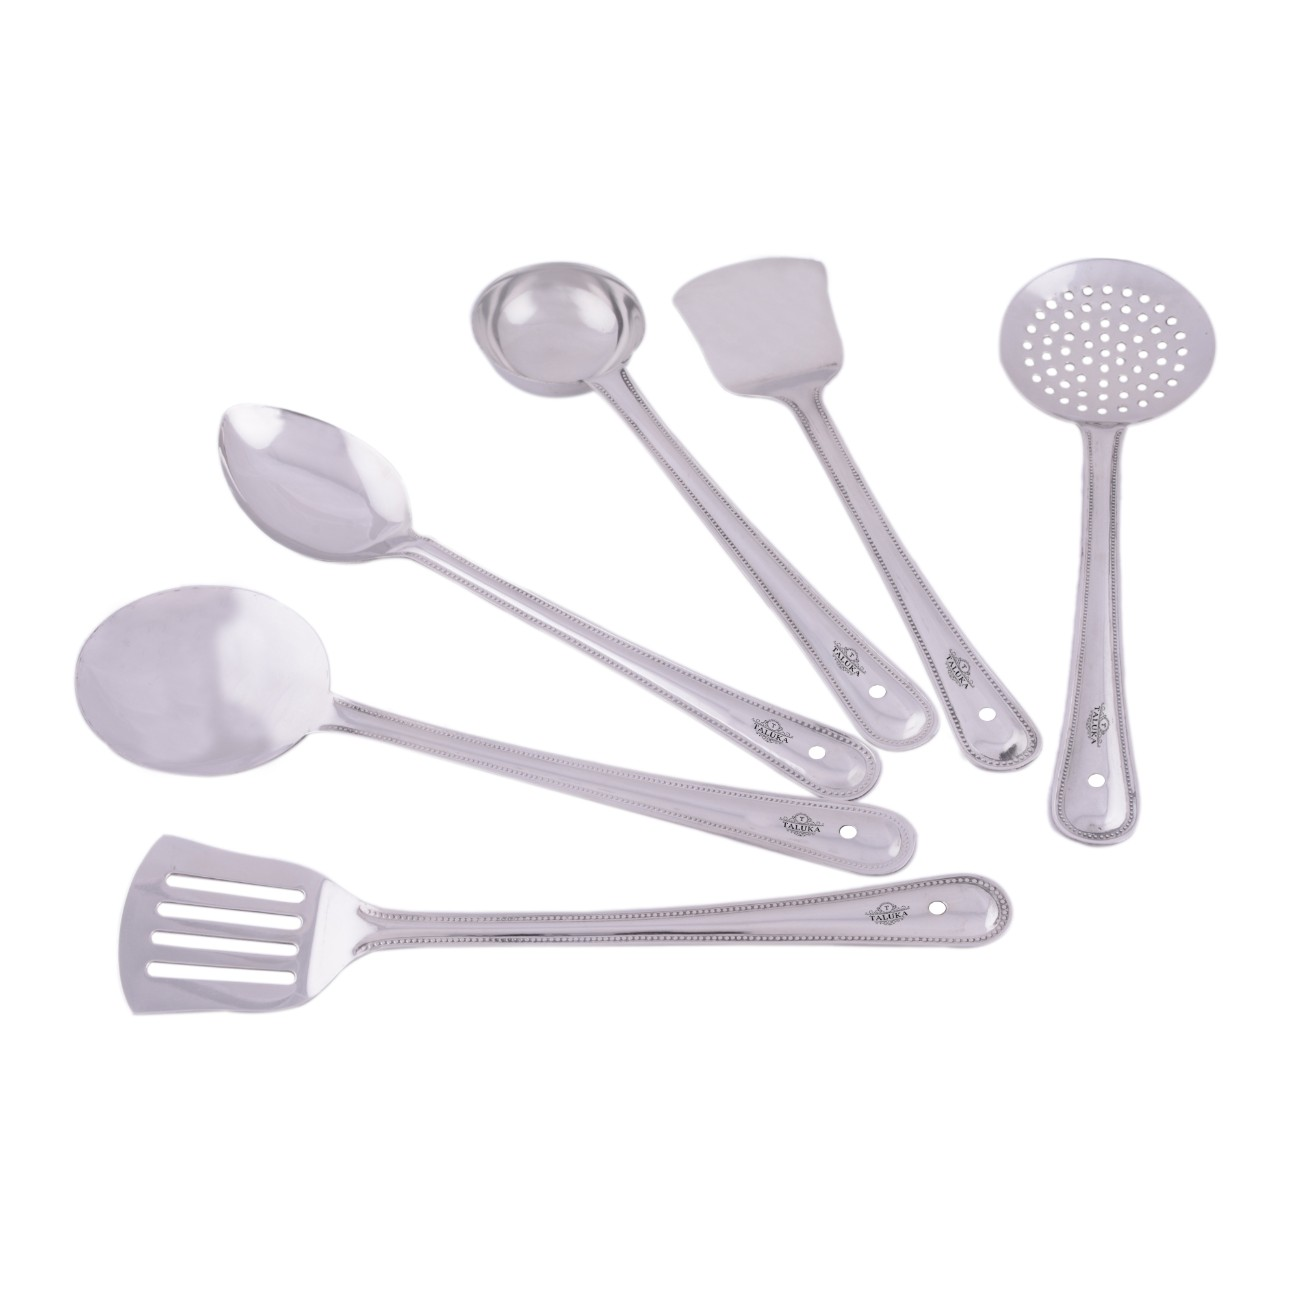 Stainless Steel Serving Cooking Kitchen Combo Set of 6 Different Spatula Ladle Spoons